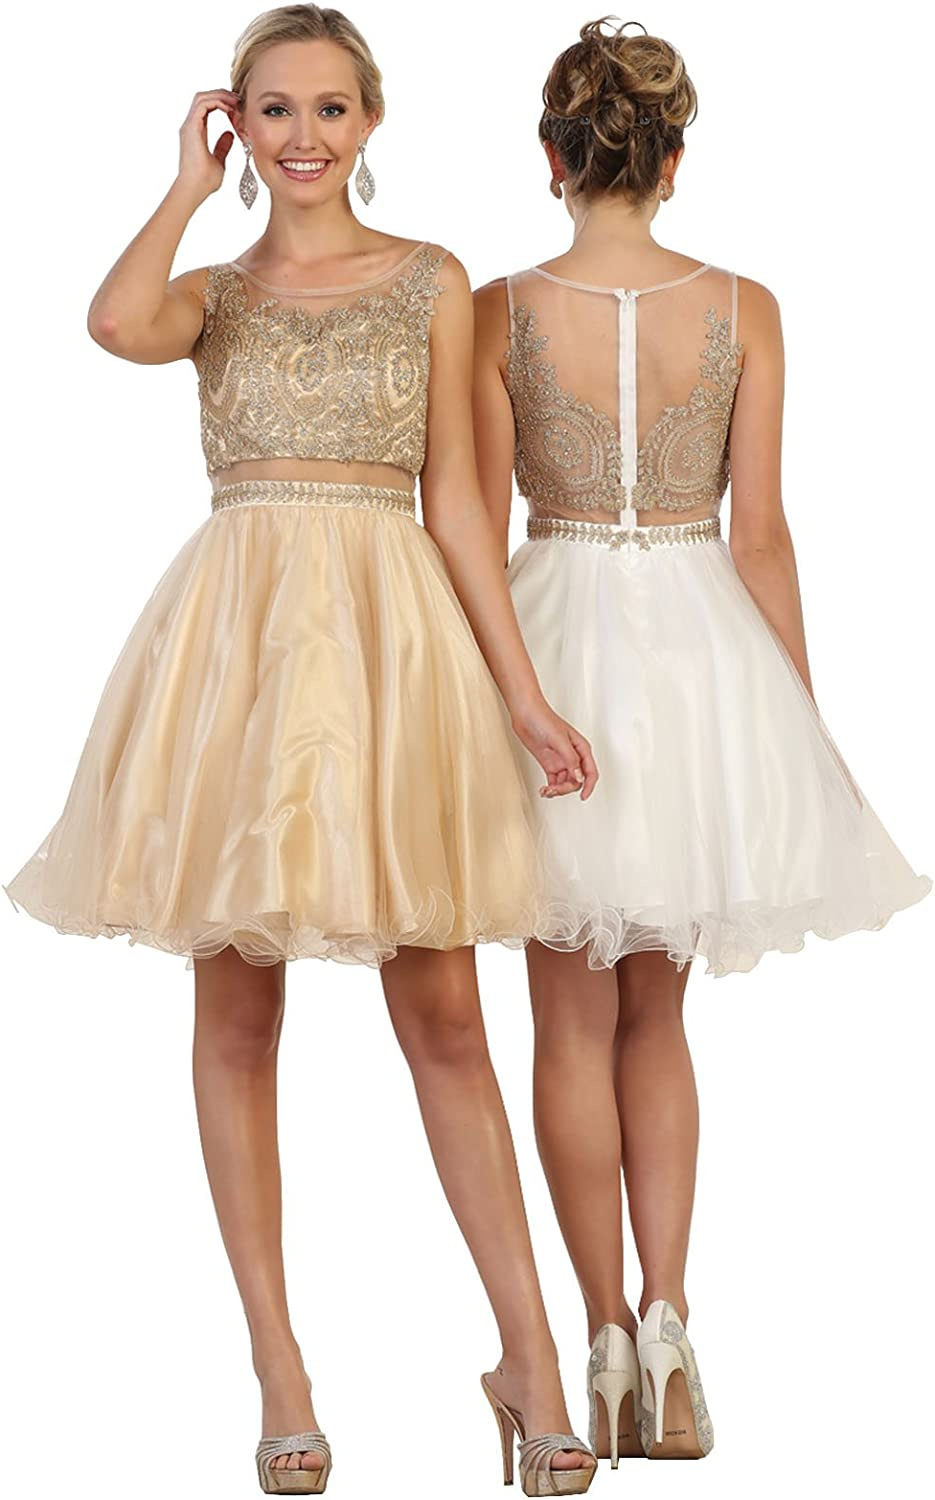 May Queen Formal Dress Shops Inc FDS1462 Two Piece Semi Formal Short Dress